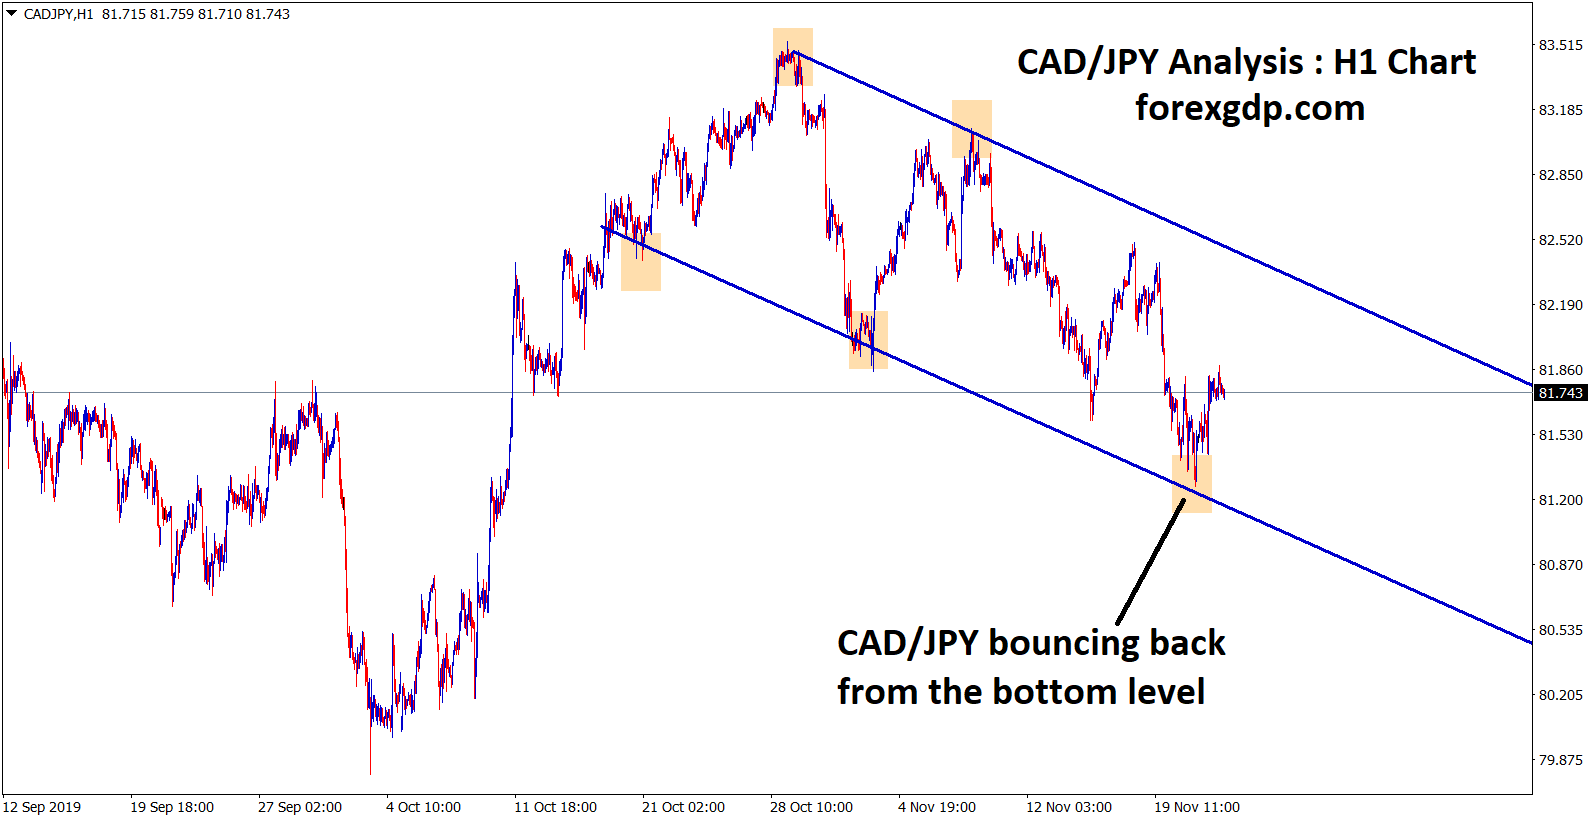 cad jpy bounce back from the bottom level in an downtrend channel